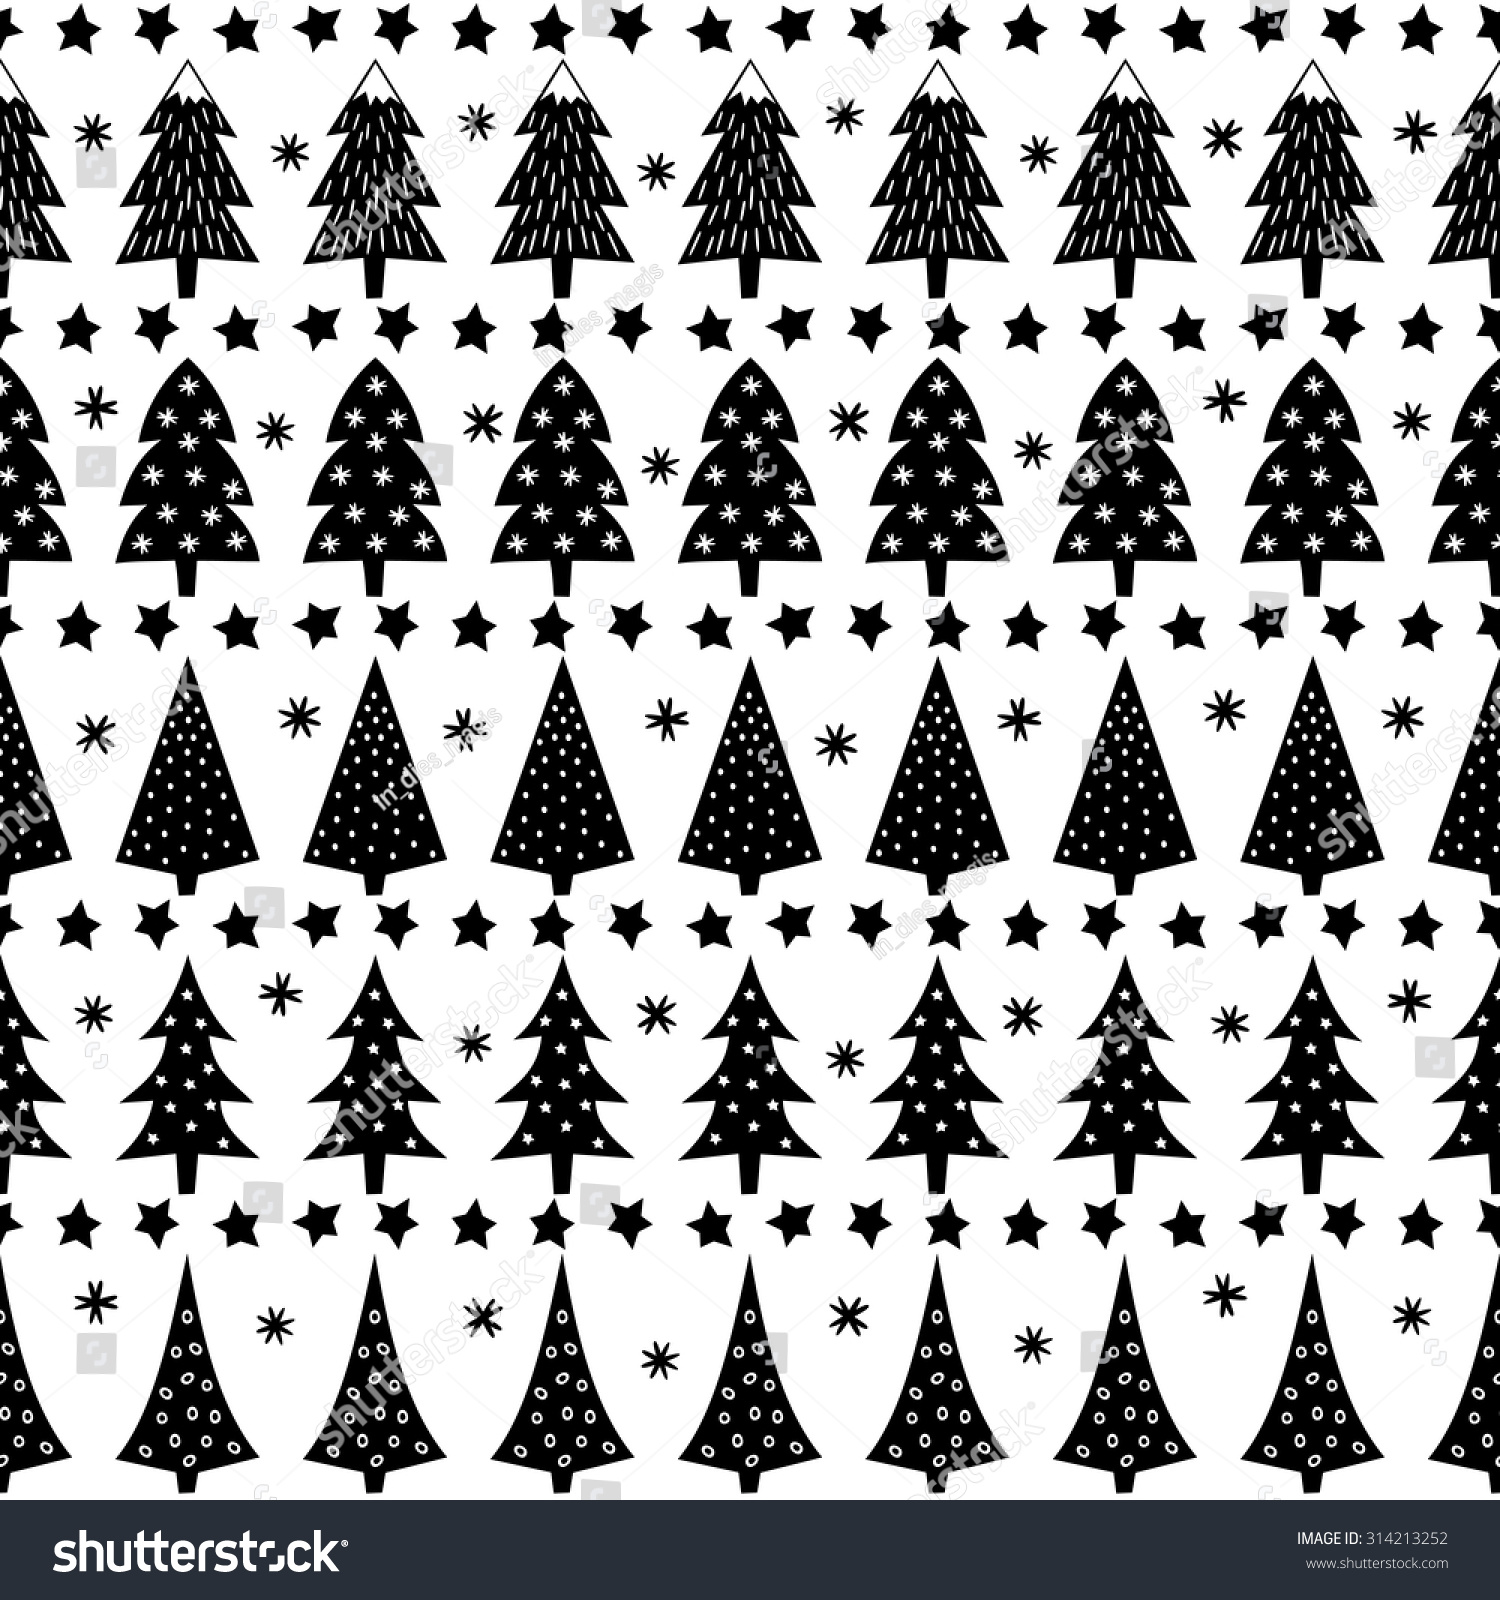 Seamless fir tree scandinavian pattern textile background wrapping - Forest Background Illustration Simple Seamless Christmas Pattern Xmas Trees Stars Snowflakes